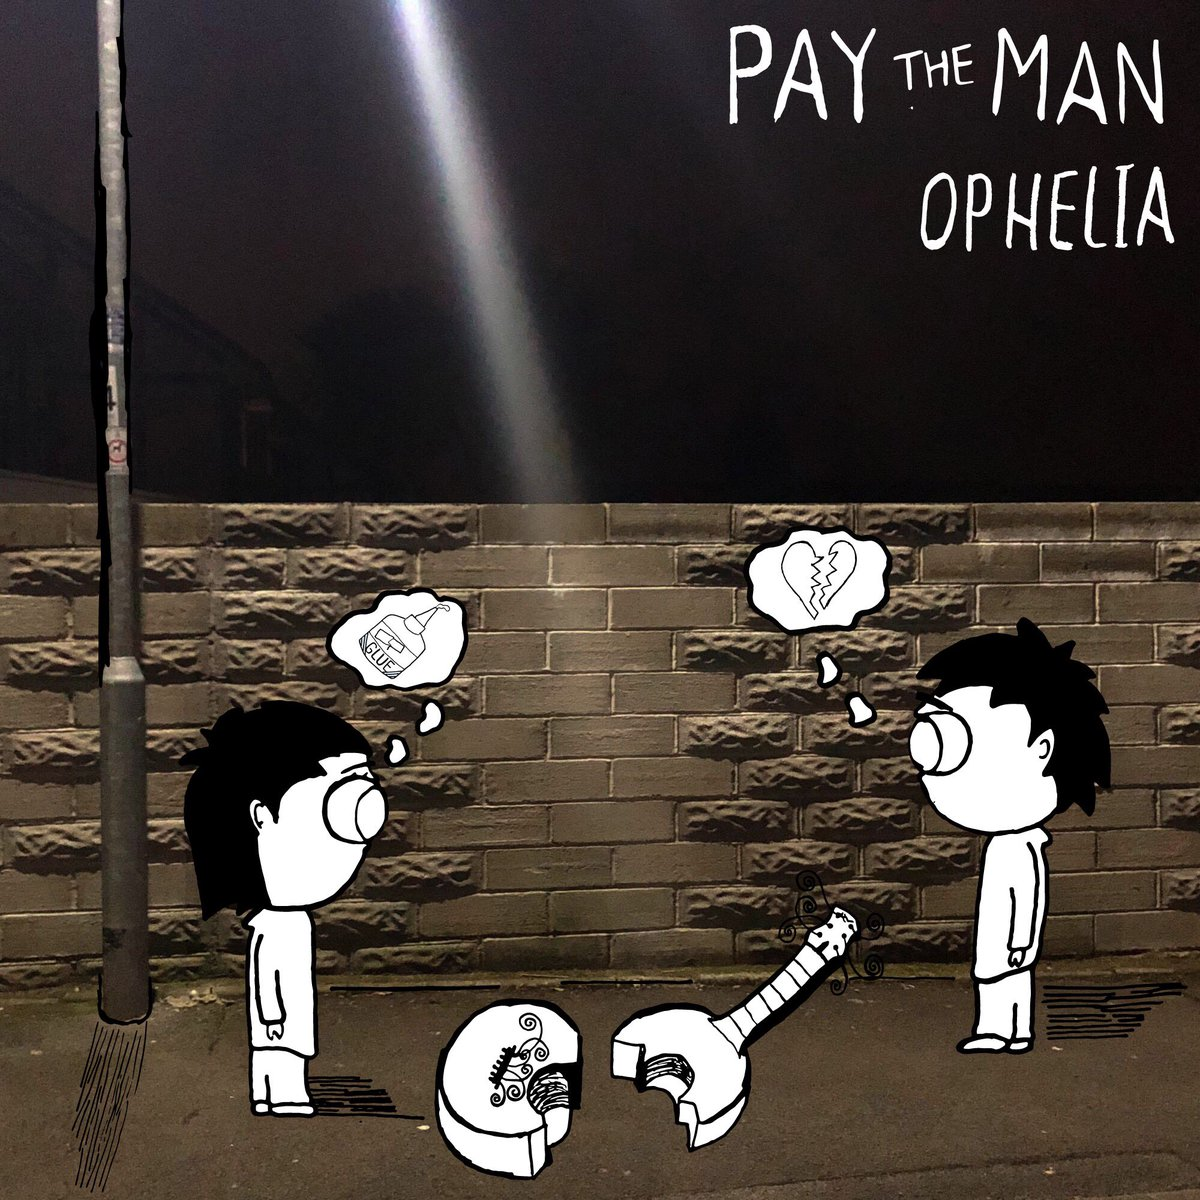 Got a new song out guys!! Check out #ophelia on @Bandcamp  http:// paytheman.bandcamp.com  &nbsp;  . Big thanks to @iambornintothis for his ever mad recording skills!<br>http://pic.twitter.com/bjoxUVLa0A